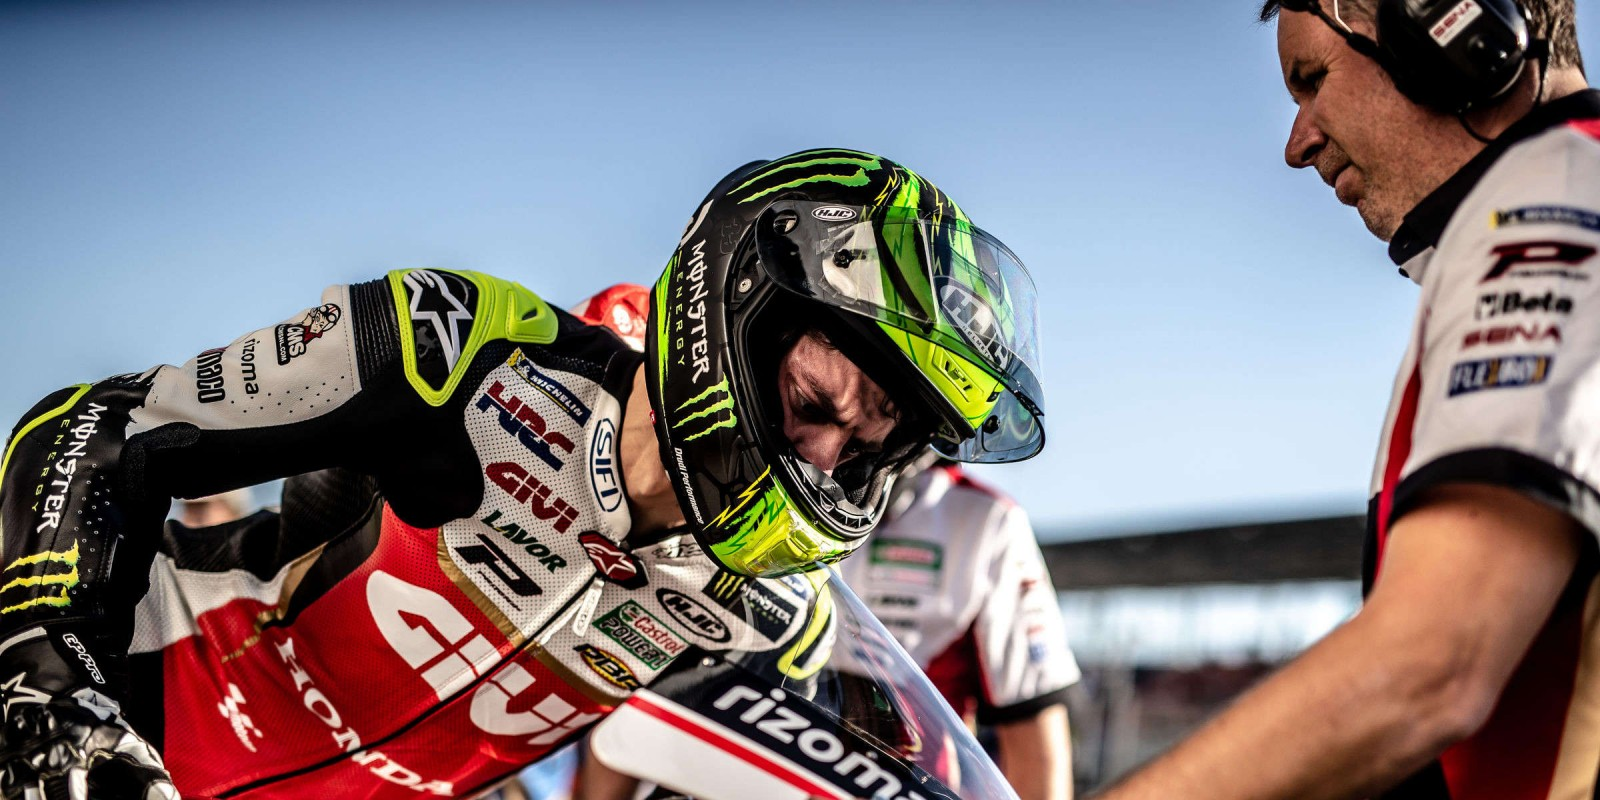 Images from the first day of the MotoGP event in Losail, Qatar